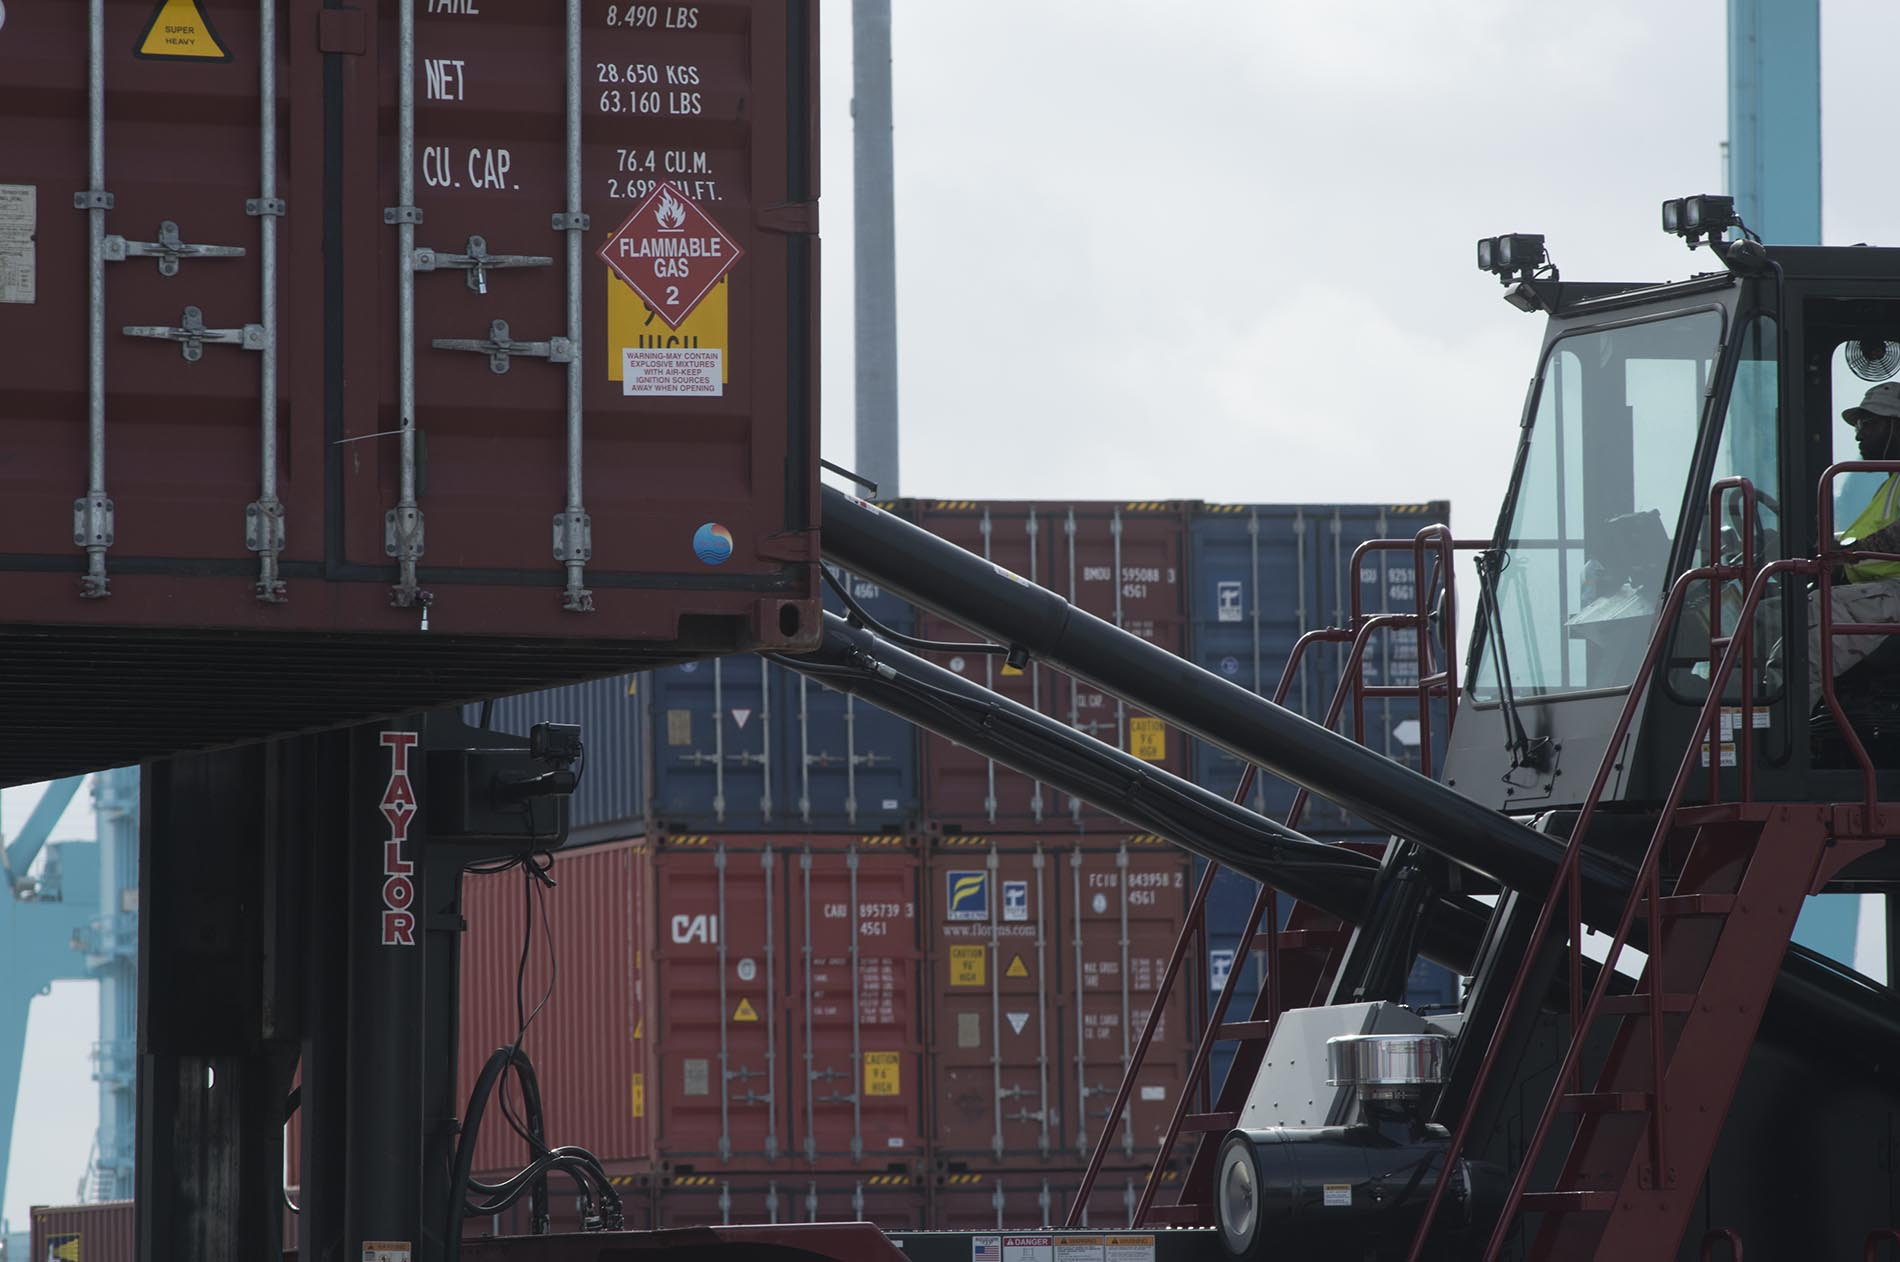 Containers on fork lift